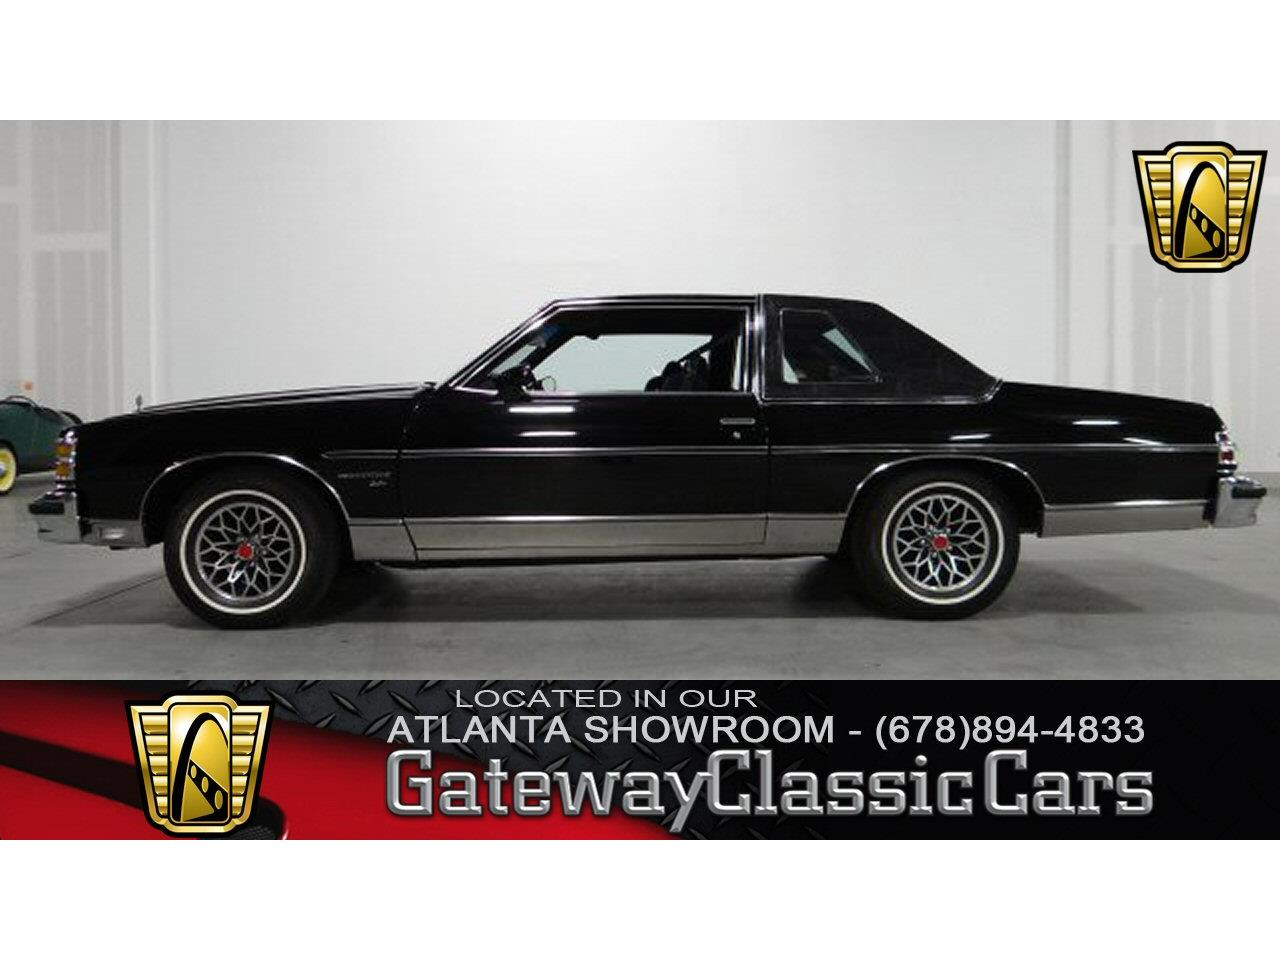 Large Picture of 1979 Bonneville located in Alpharetta Georgia - $17,595.00 Offered by Gateway Classic Cars - Atlanta - KOIW